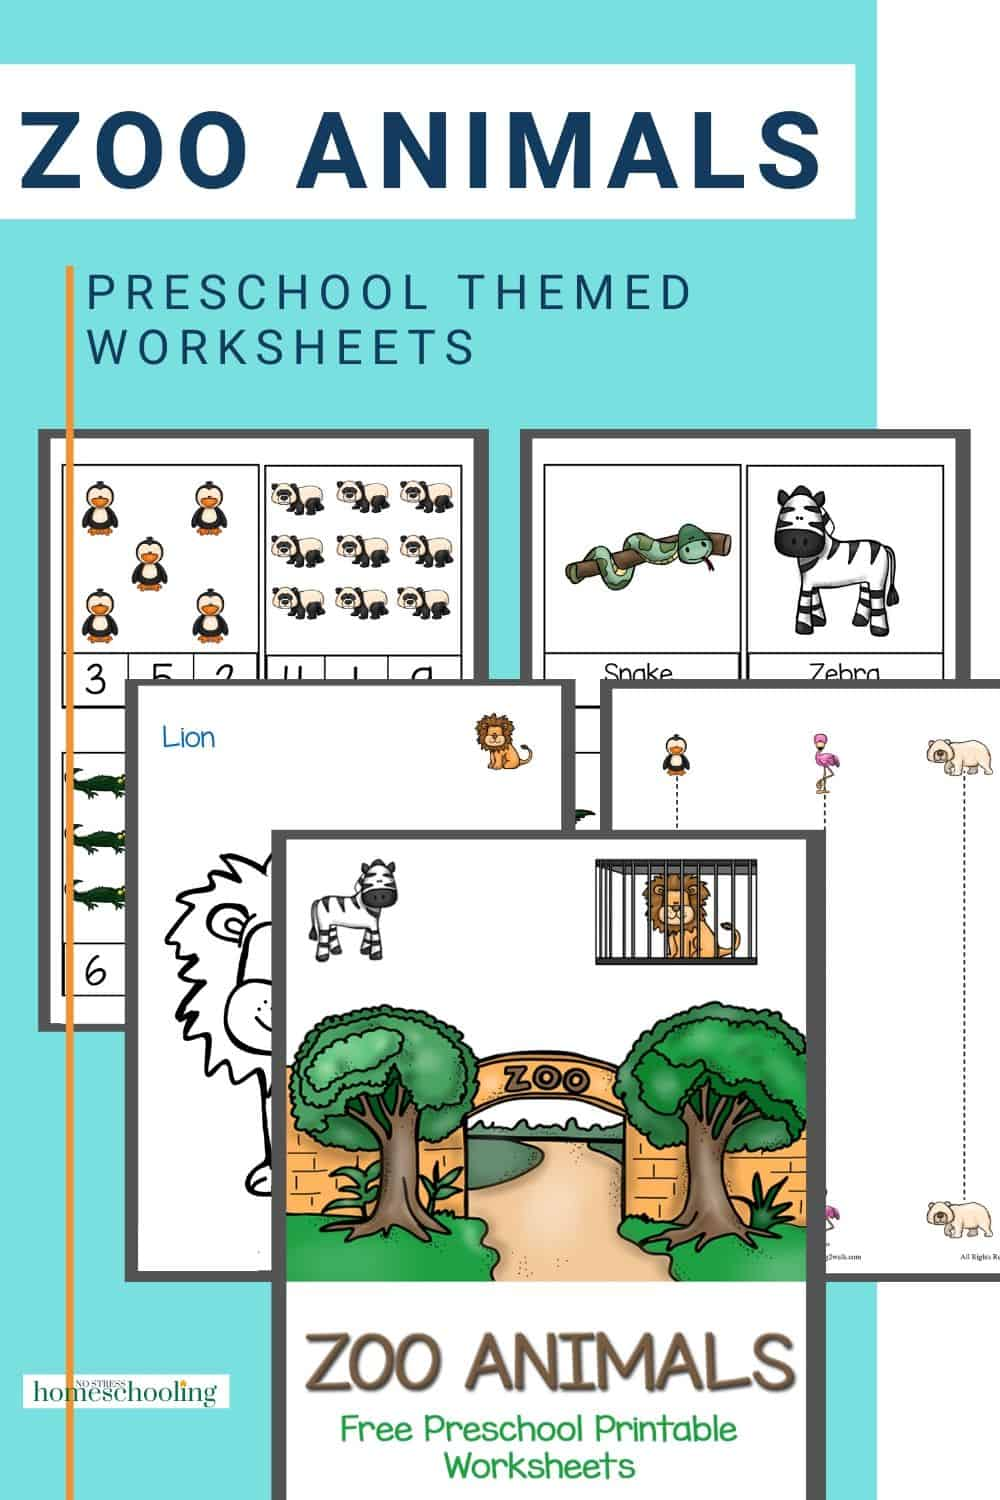 Zebra, Hippo and Crocodiles- how many zoo animals can your preschooler name? Try these free preschool printable worksheets